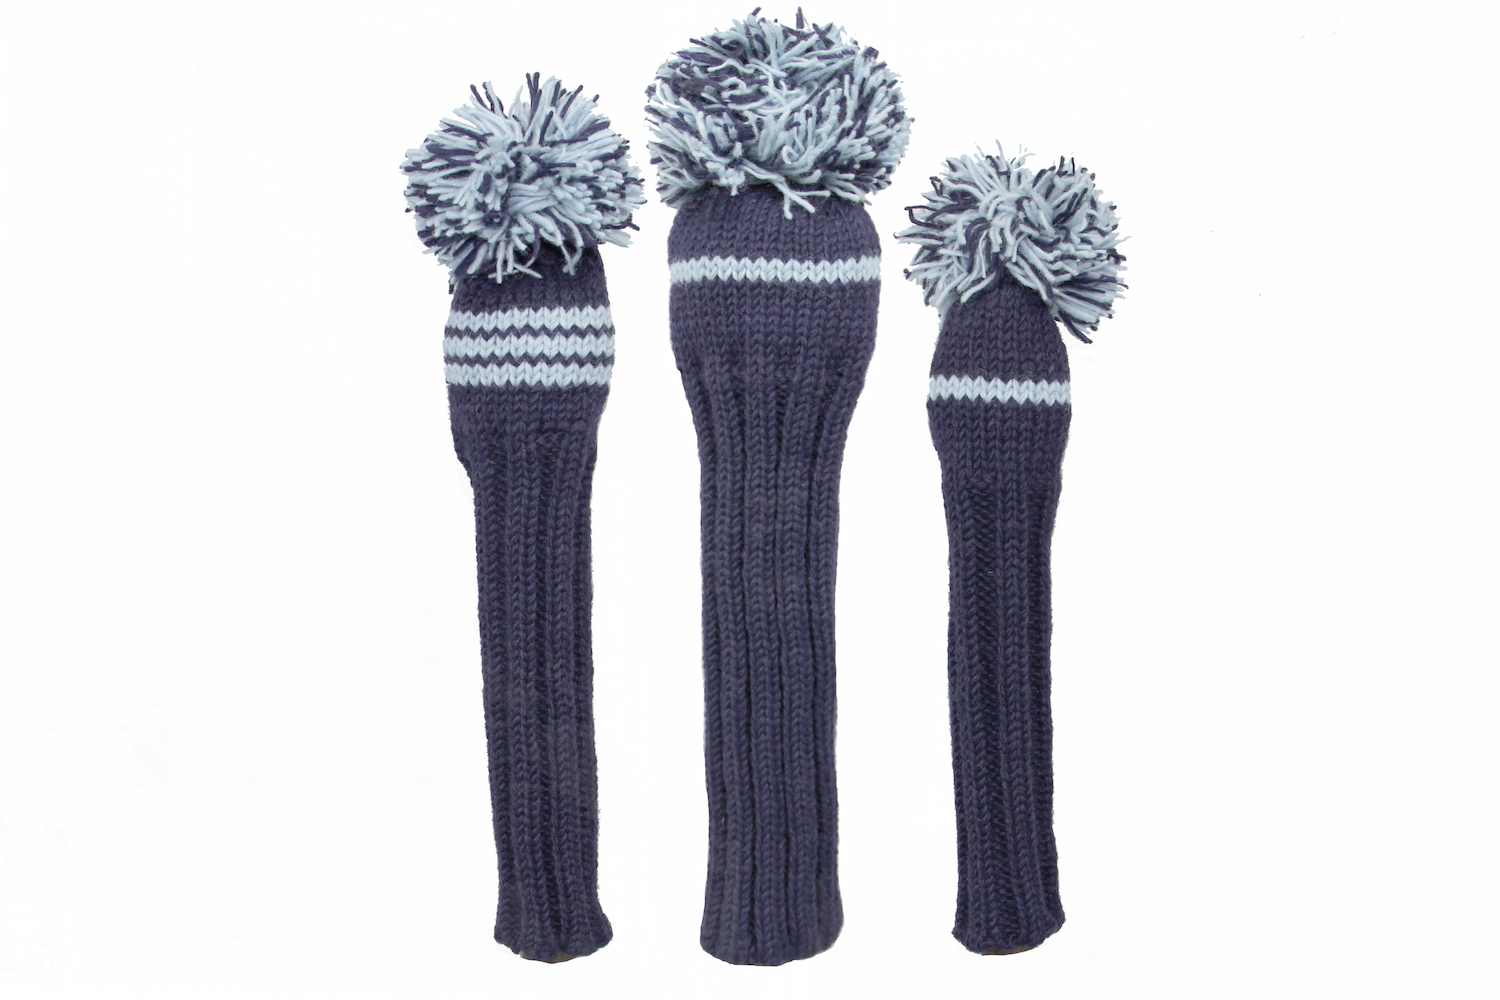 Classic Knit Golf Headcover Set | HeadcoversOnline.com